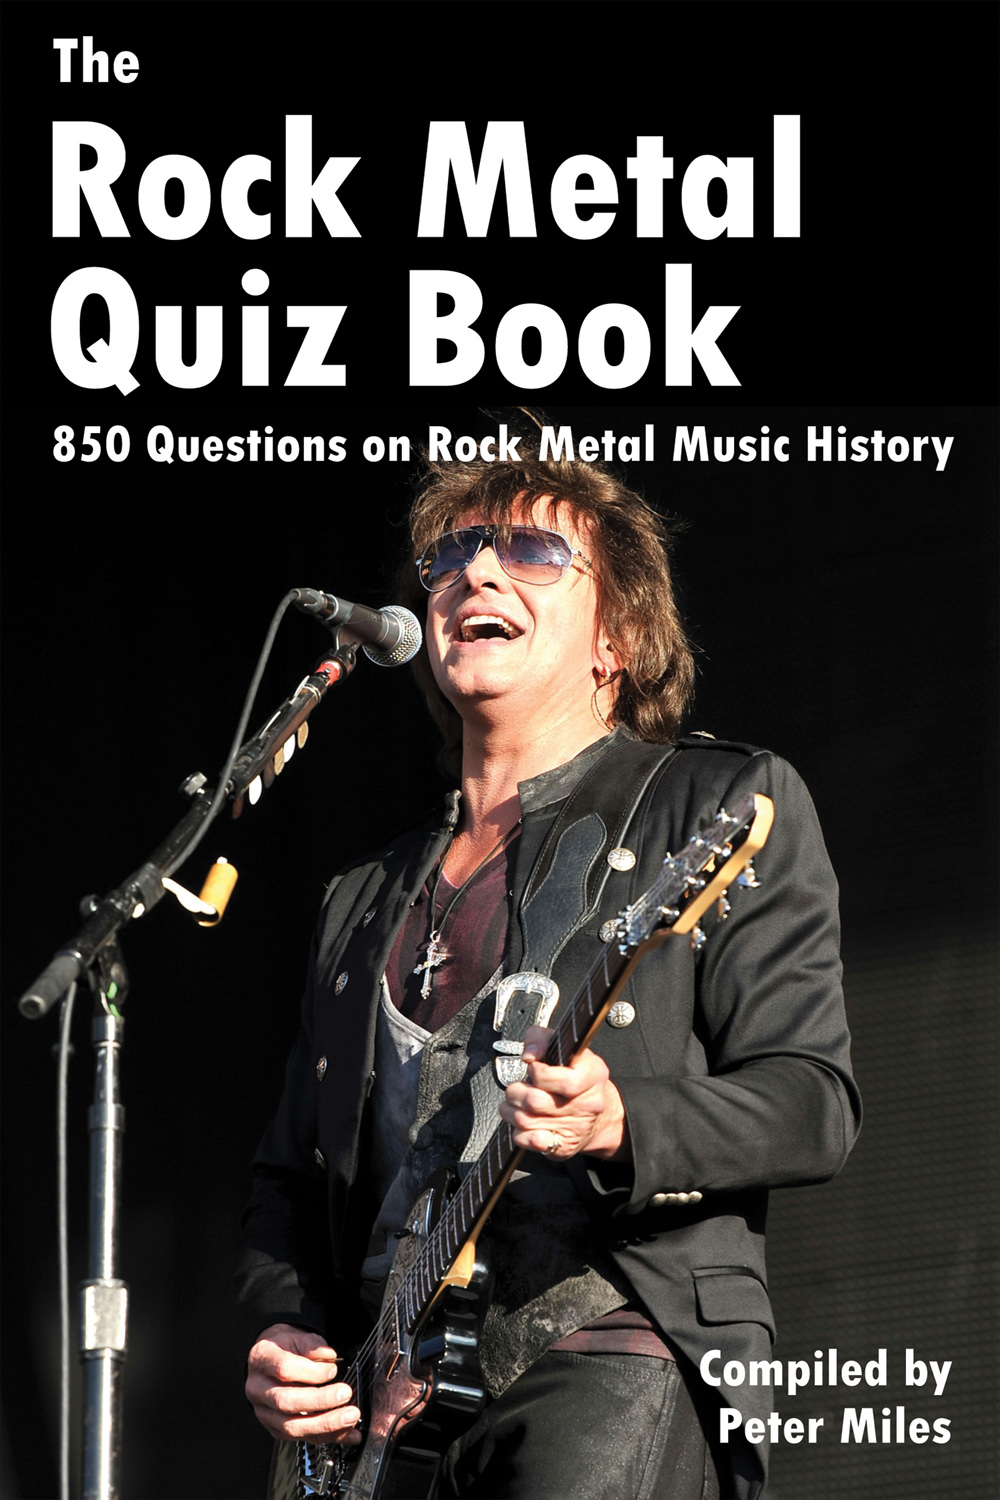 The Rock Metal Quiz Book